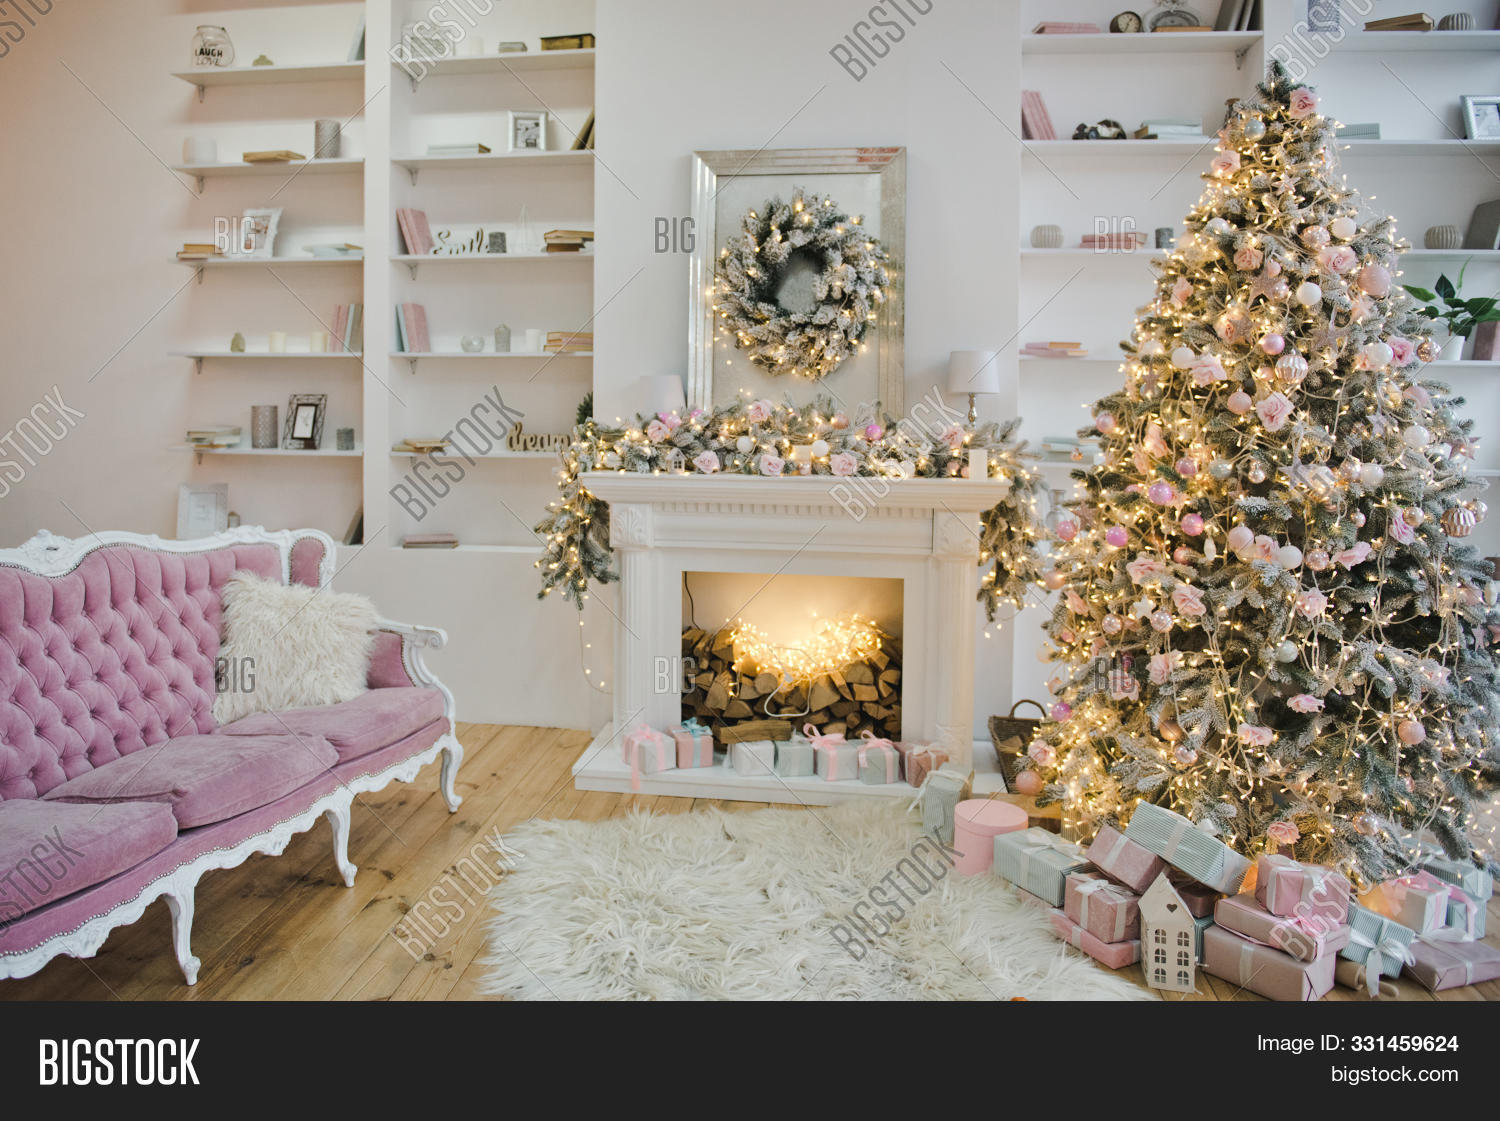 Living Room Pastel Image Photo Free Trial Bigstock